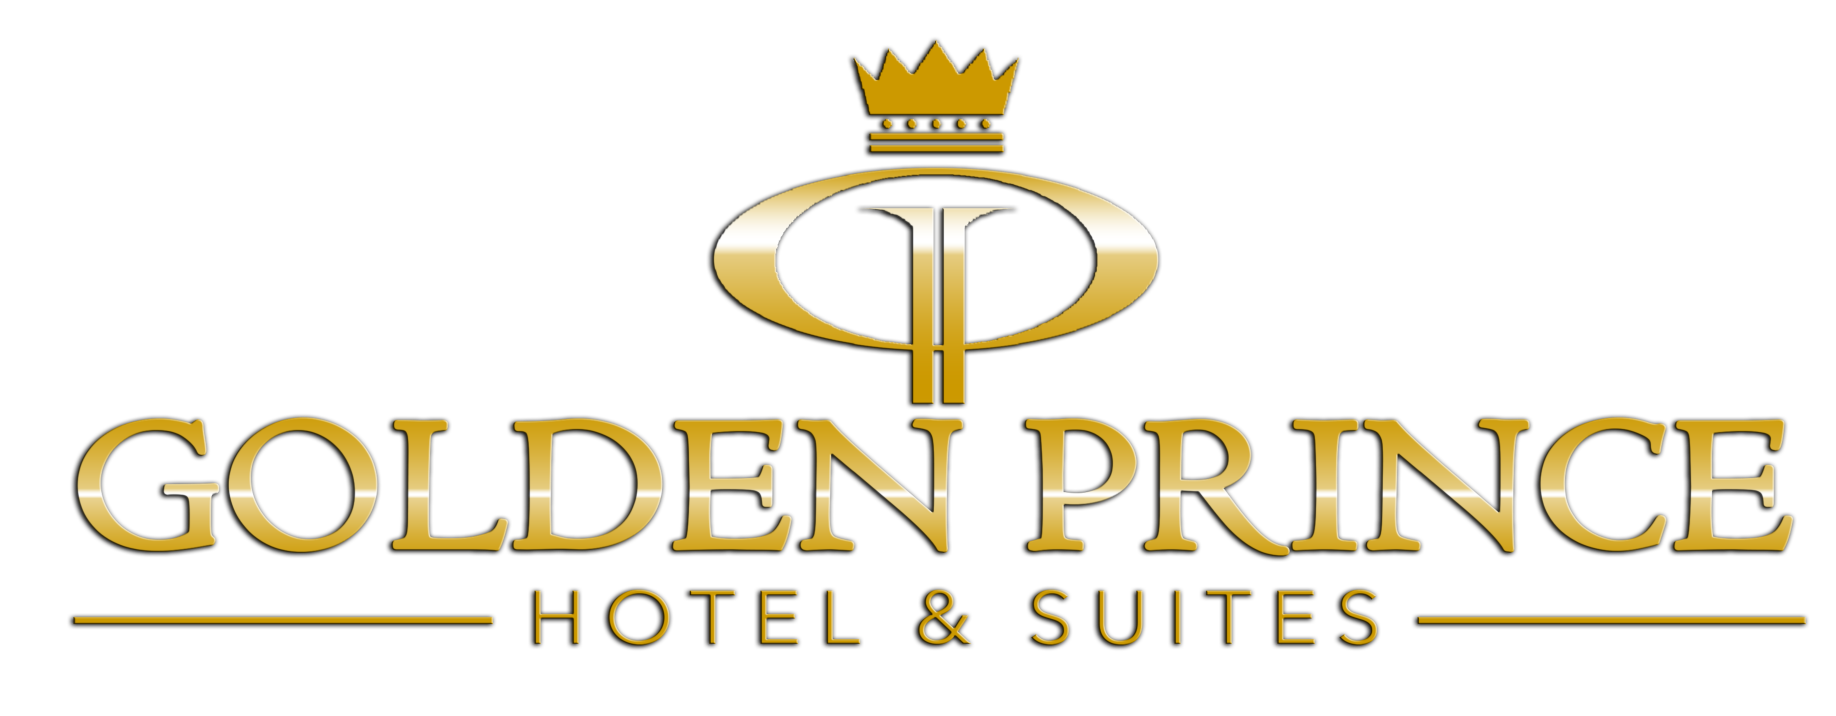 1-GOLDEN-PRINCE-HOTEL-1